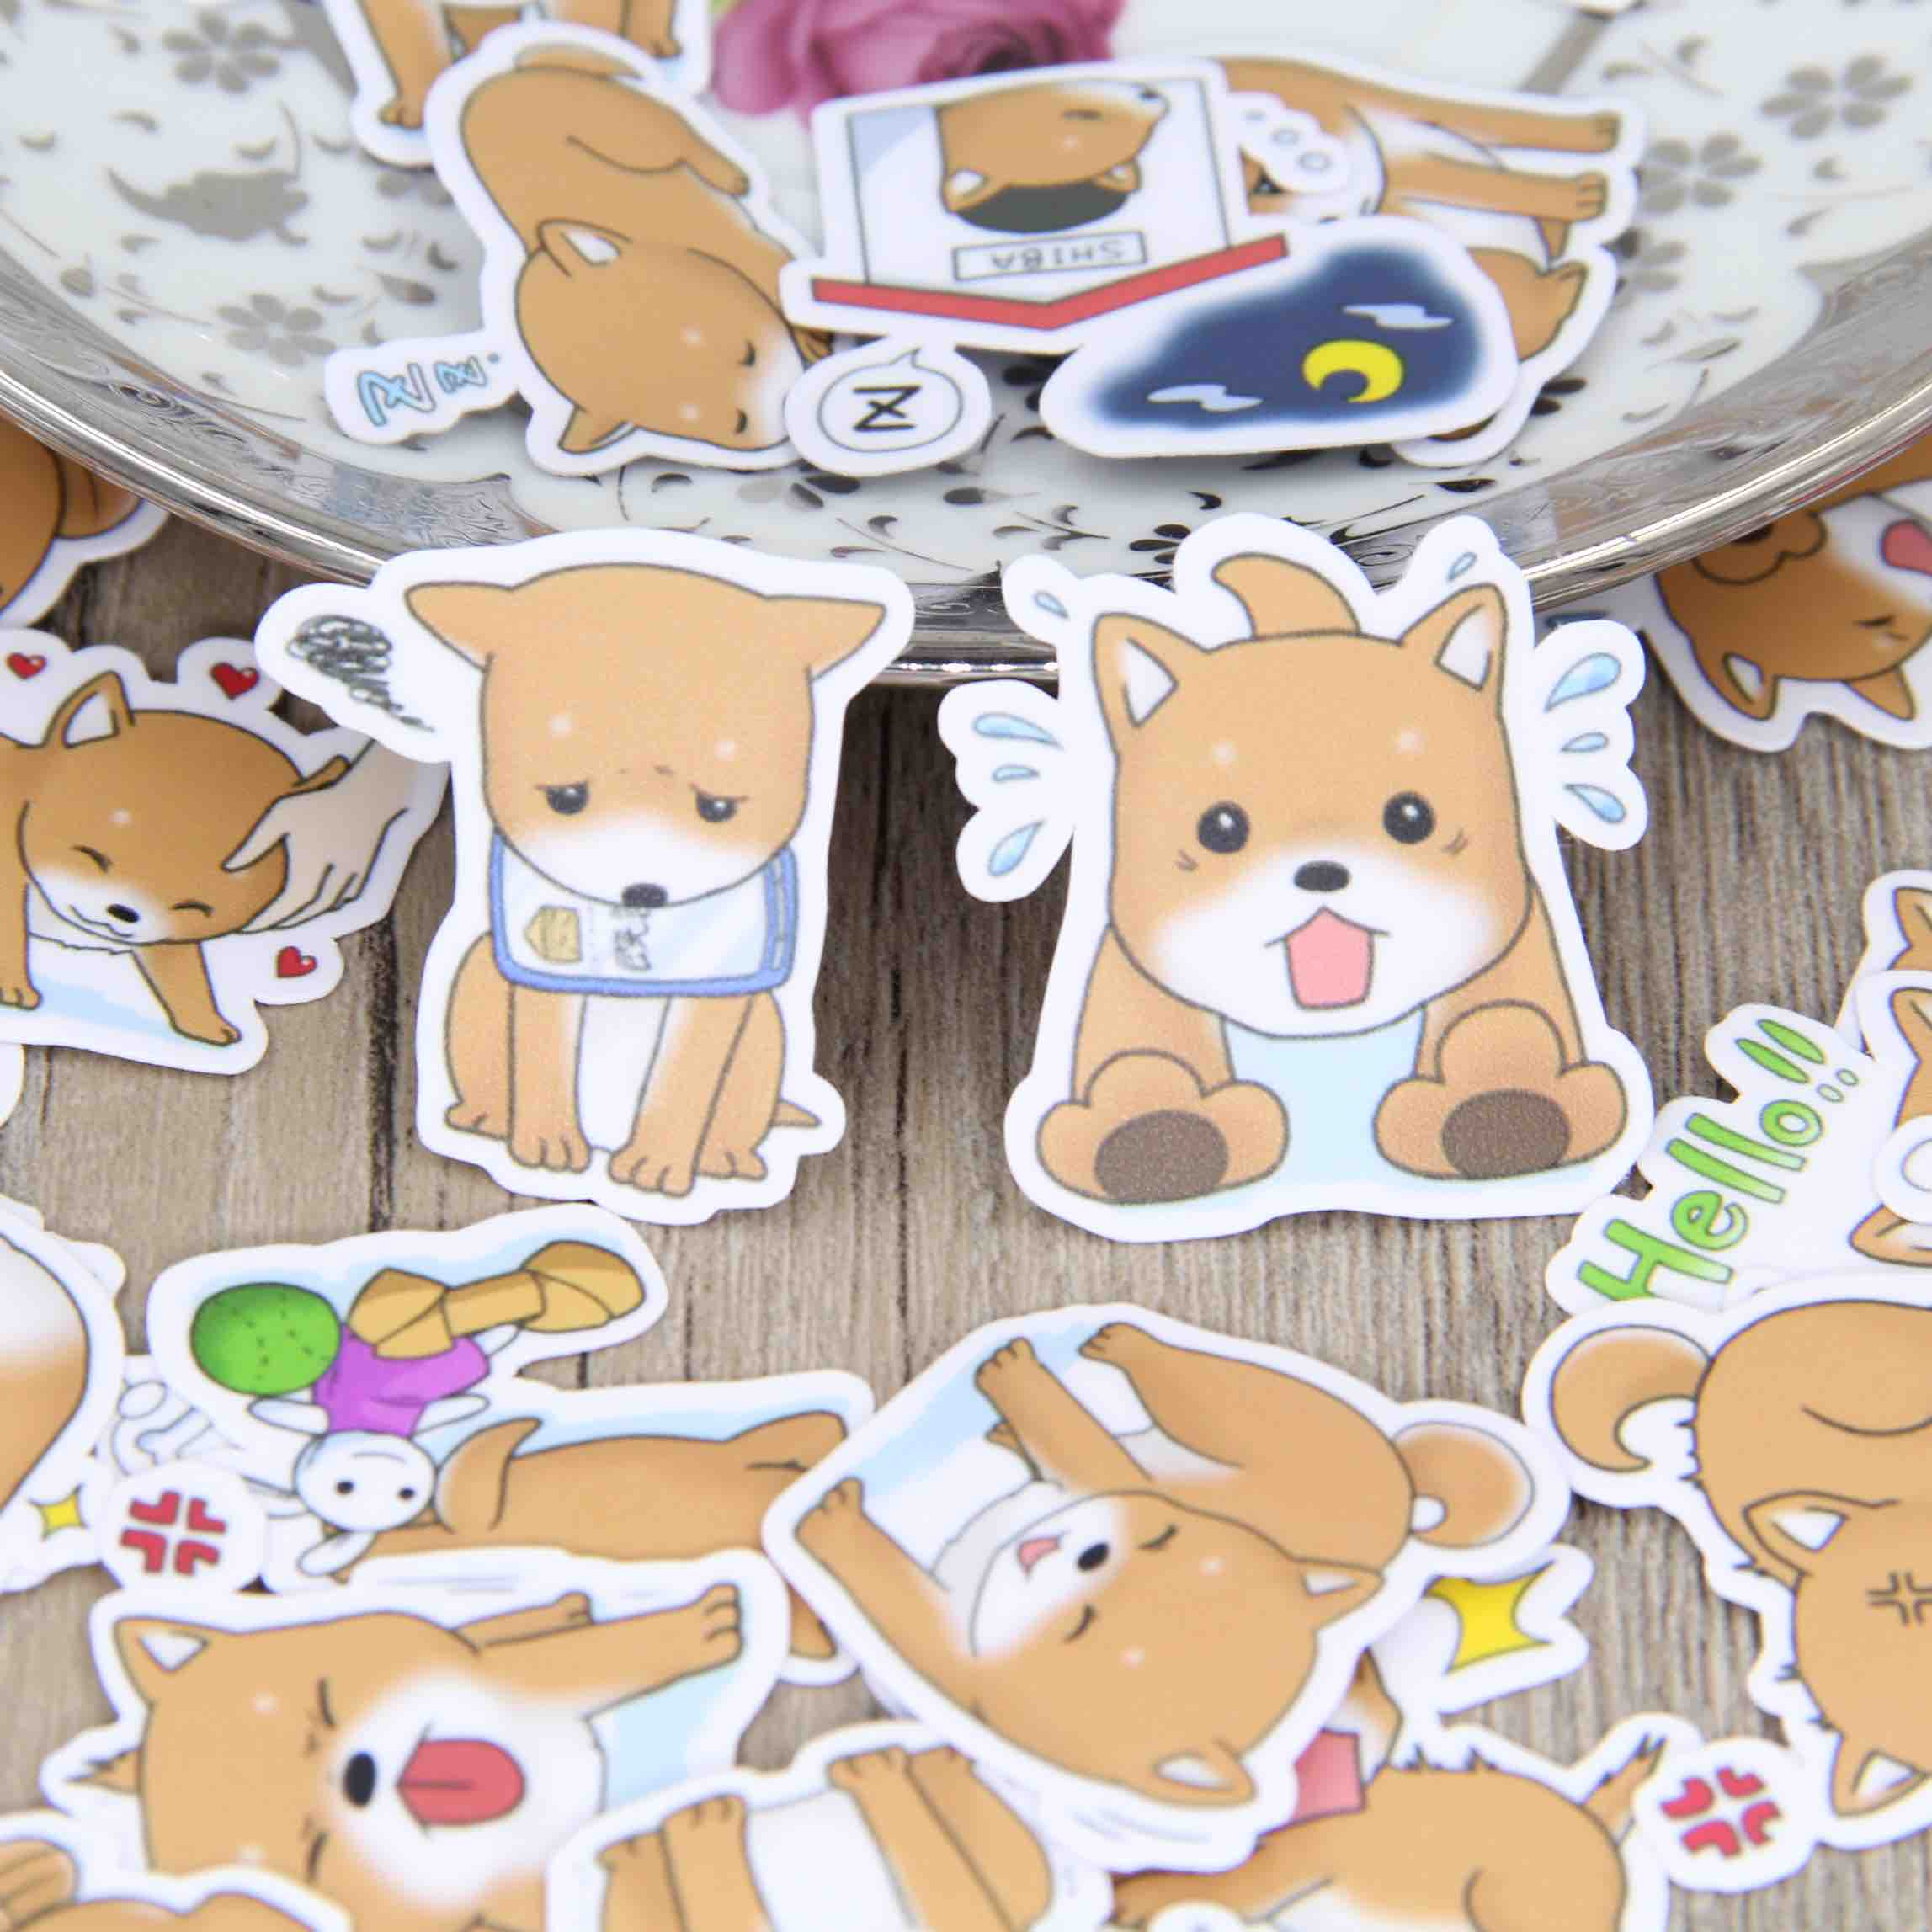 40pcs Self-made Cute Puppy Dog Animal Dogs Scrapbooking Stickers Decorative Sticker DIY Craft Photo Albums Decals Diary Deco japan imports midori planner calendar decorative stickers cute animal 5pcs